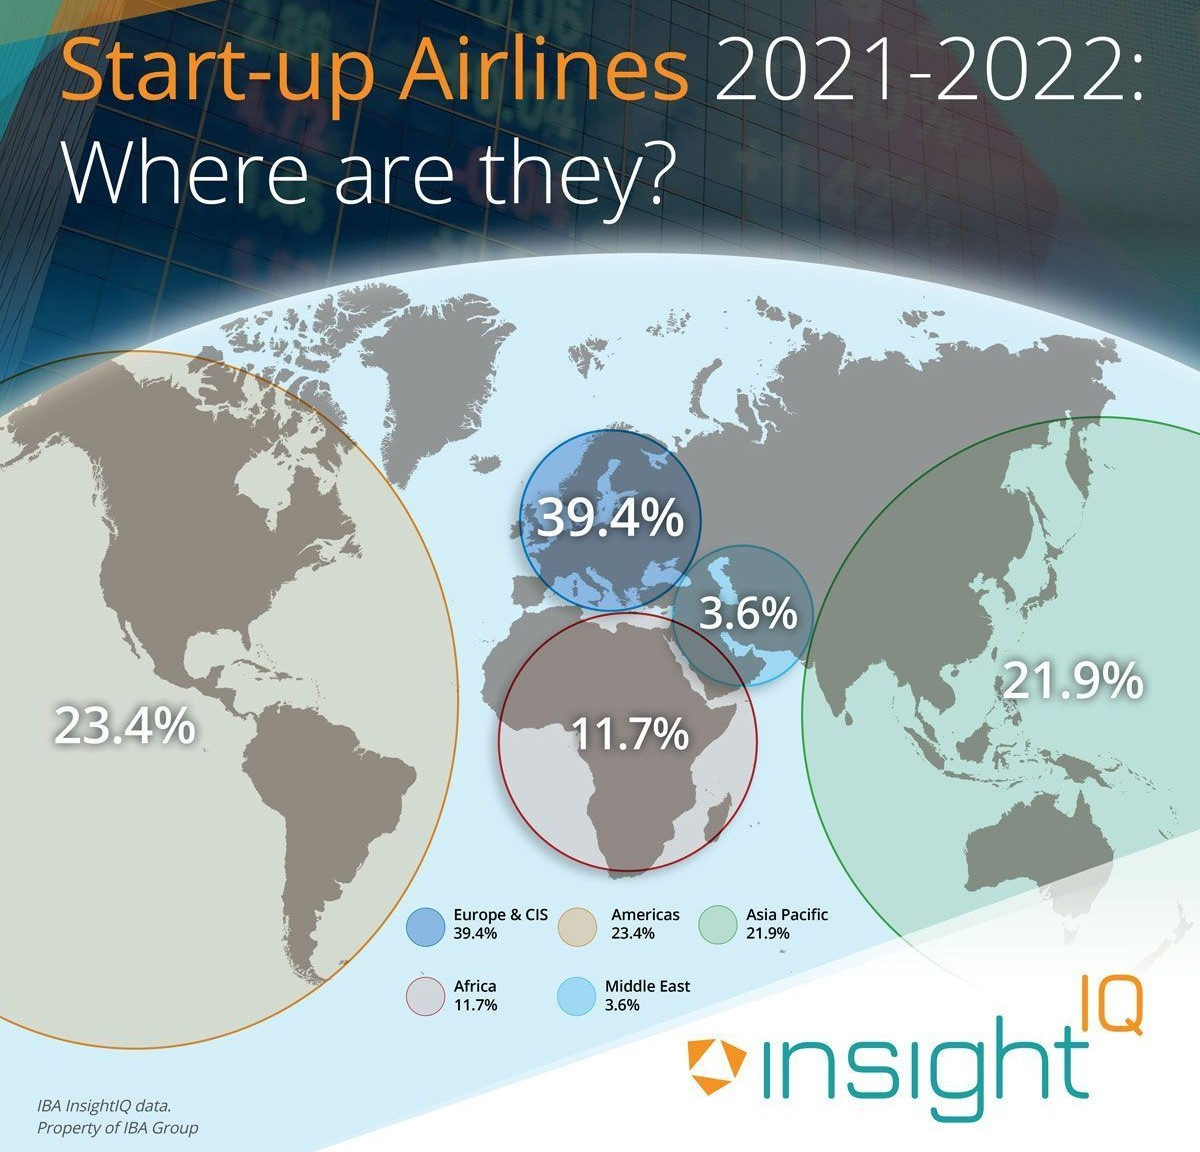 Start-up Airlines 2021-2022: Where are they?